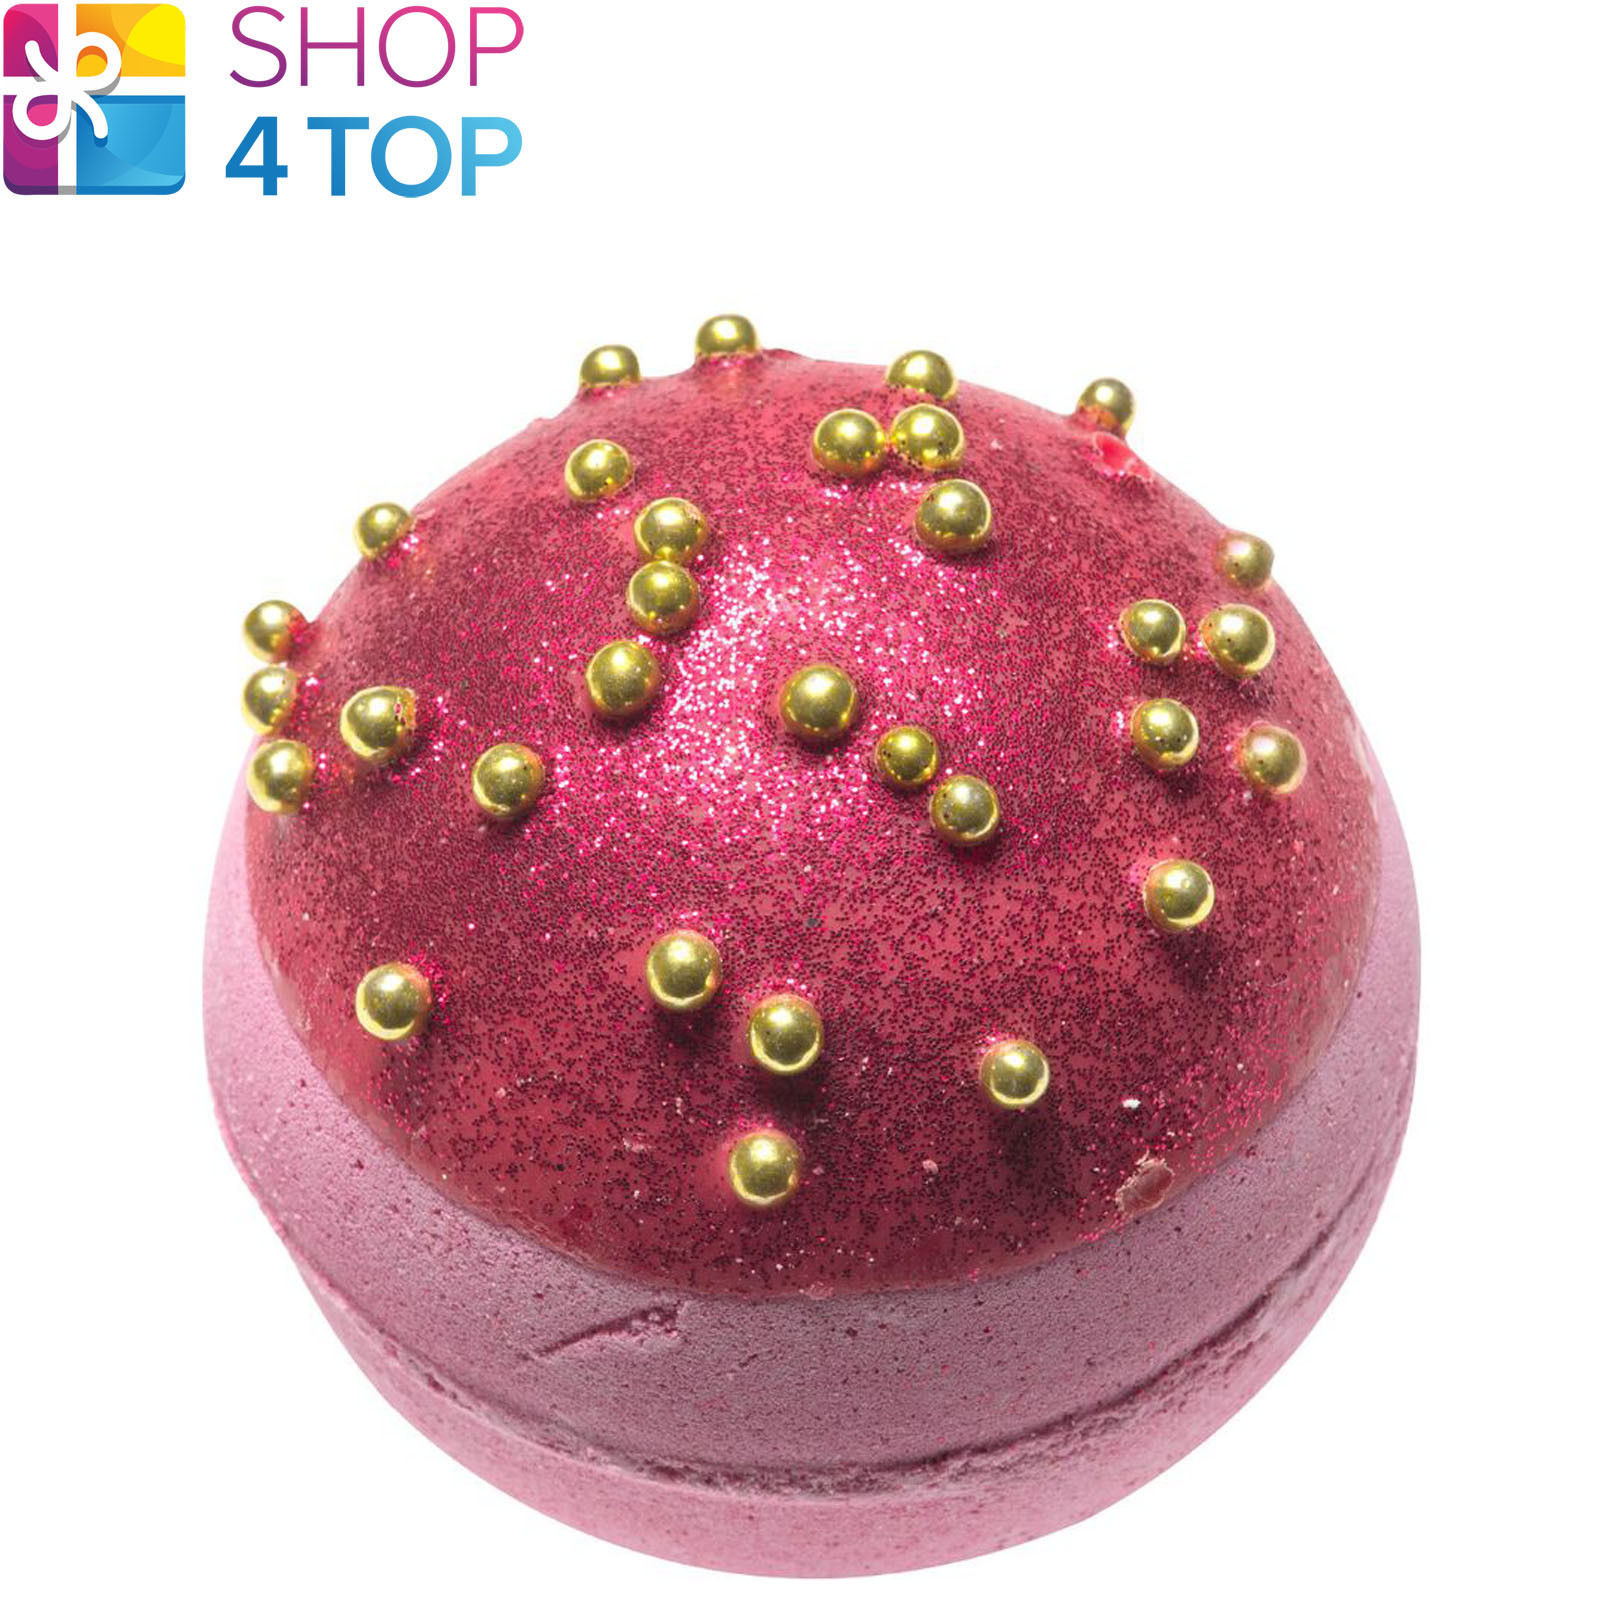 PASSIONFRUIT DREAM BATH BLASTER BOMB COSMETICS FRUIT NEROLI HANDMADE NATURAL NEW